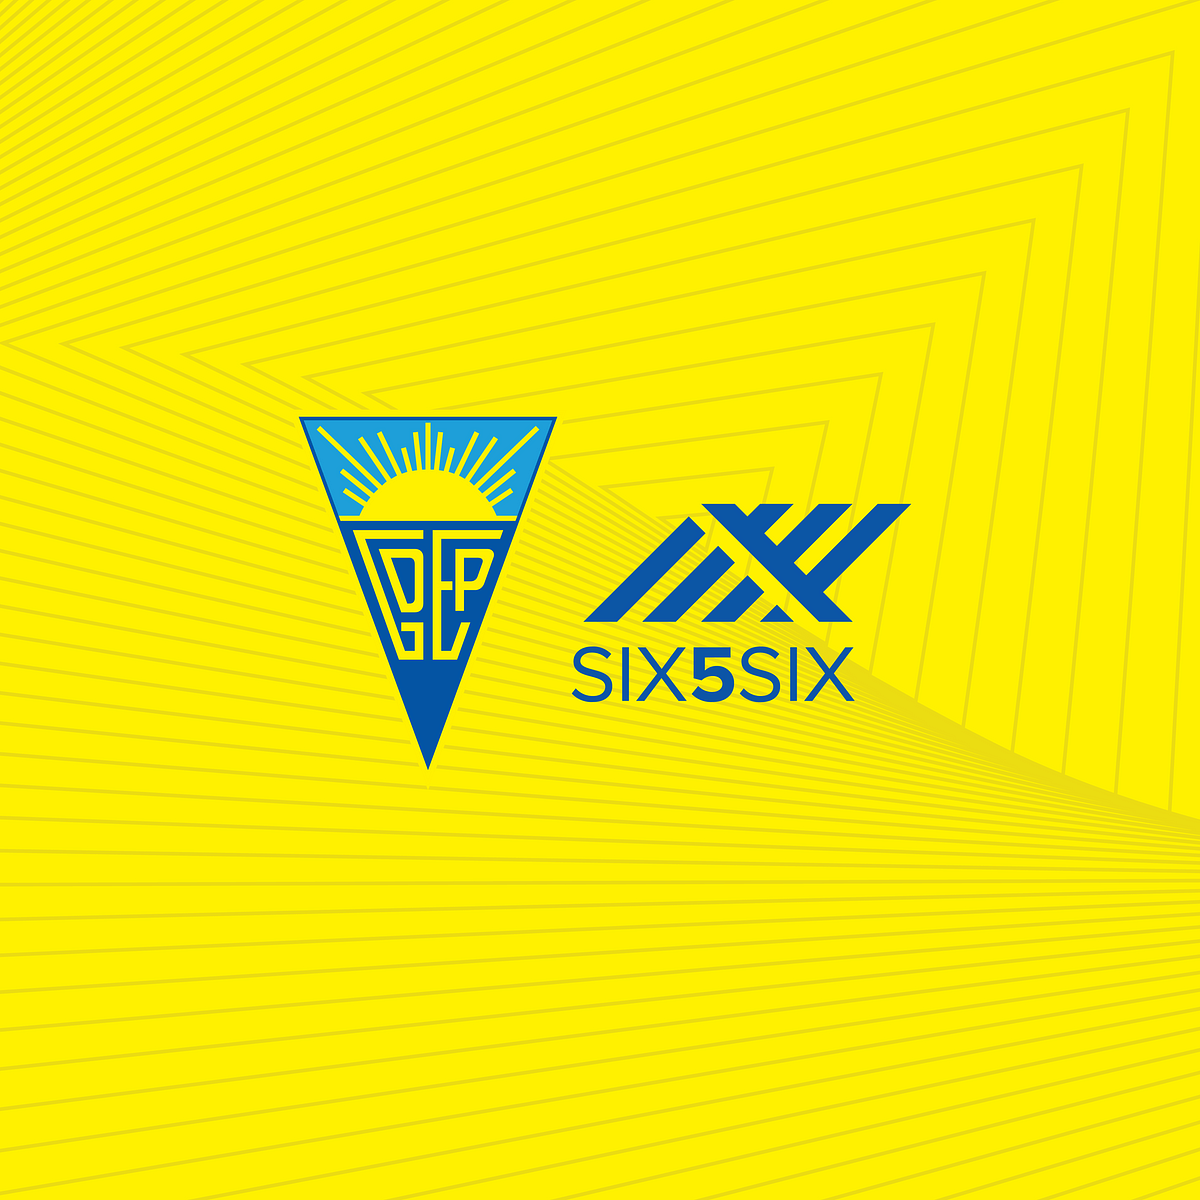 Indian sportswear brand SIX5SIX announces kit and merchandise partnership with Portuguese club - Free Press Journal